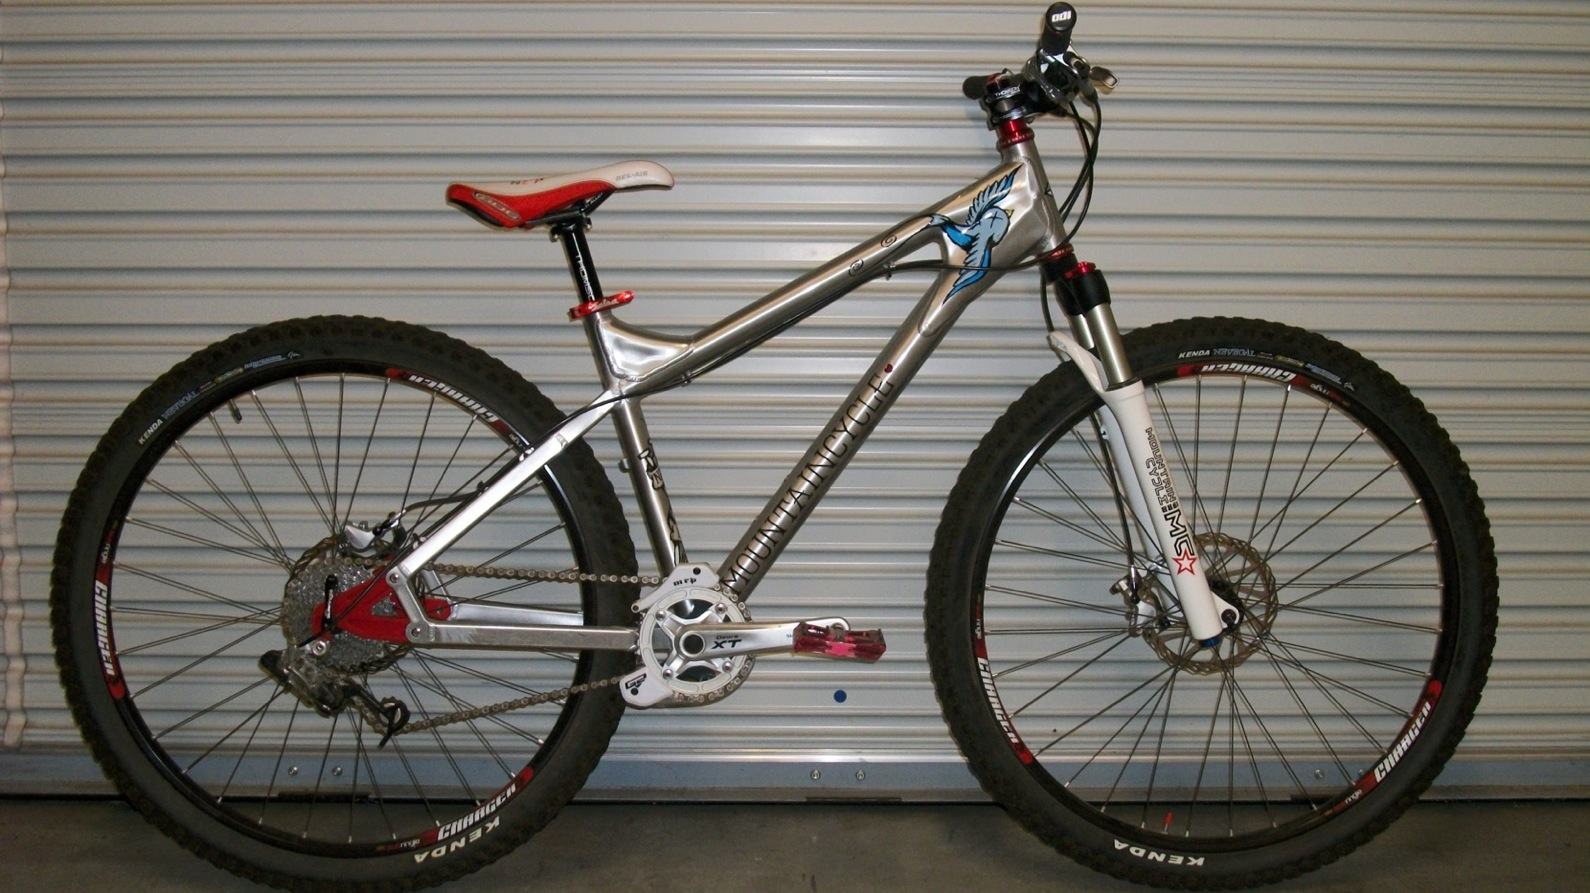 So, When are we getting a 29er-rumble-29r-484.kb.jpg